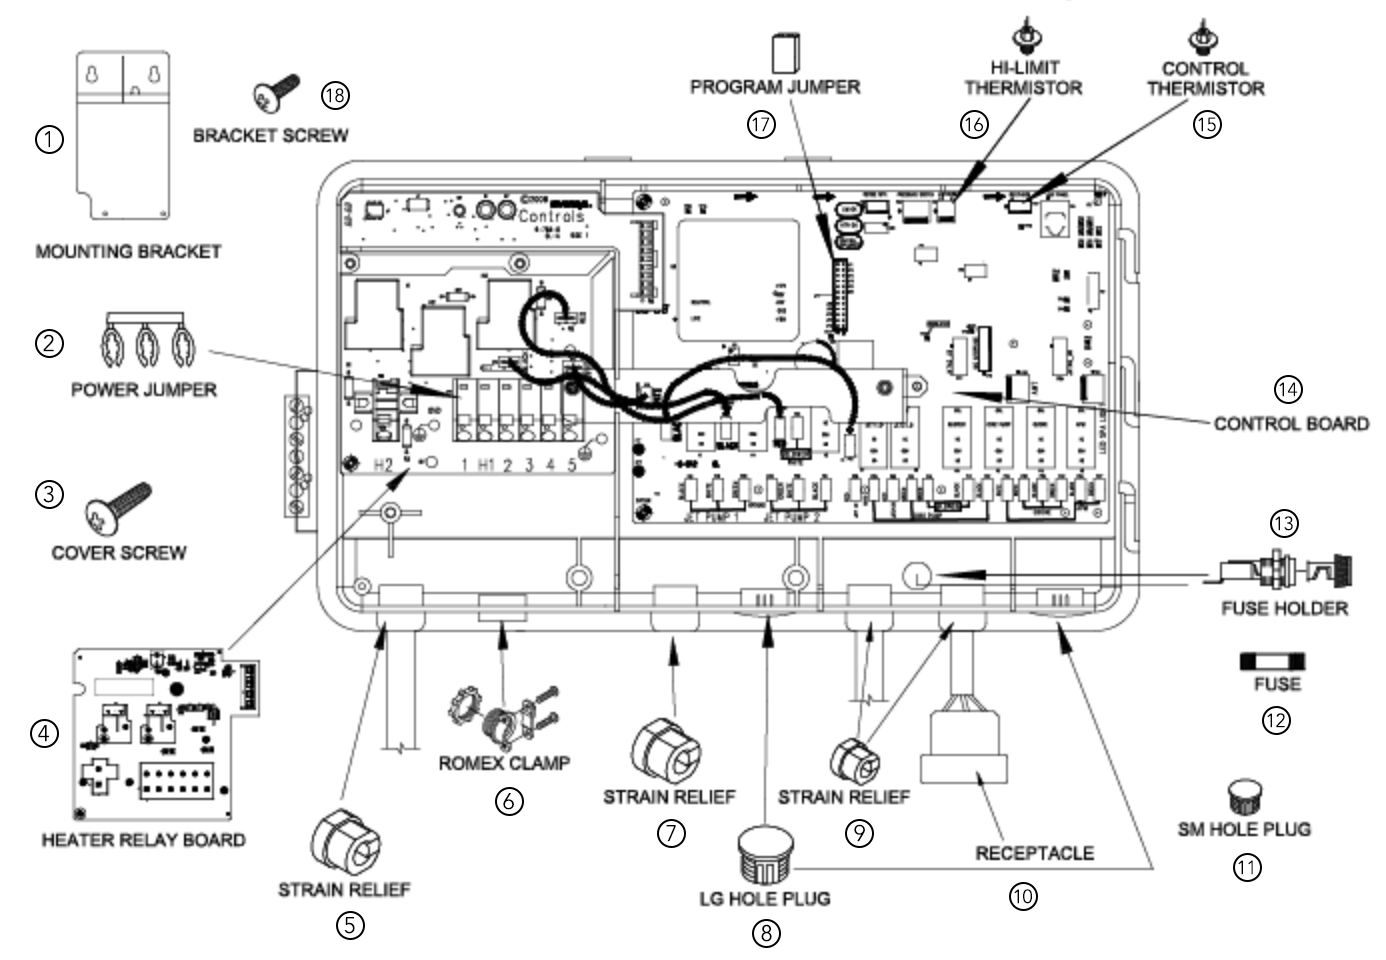 Iq Hot Springs Hot Tub Wiring Diagram